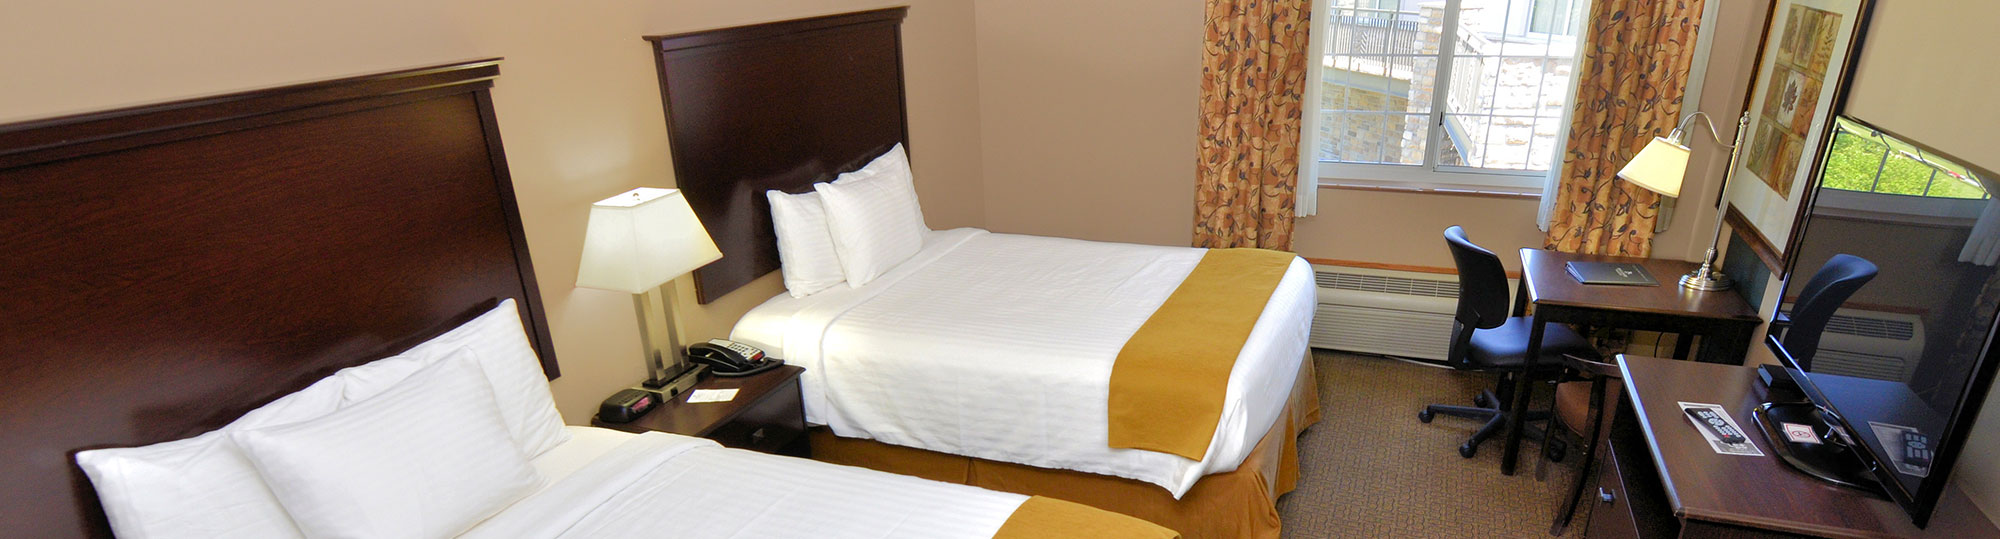 Boulders Inn & Suites Denison